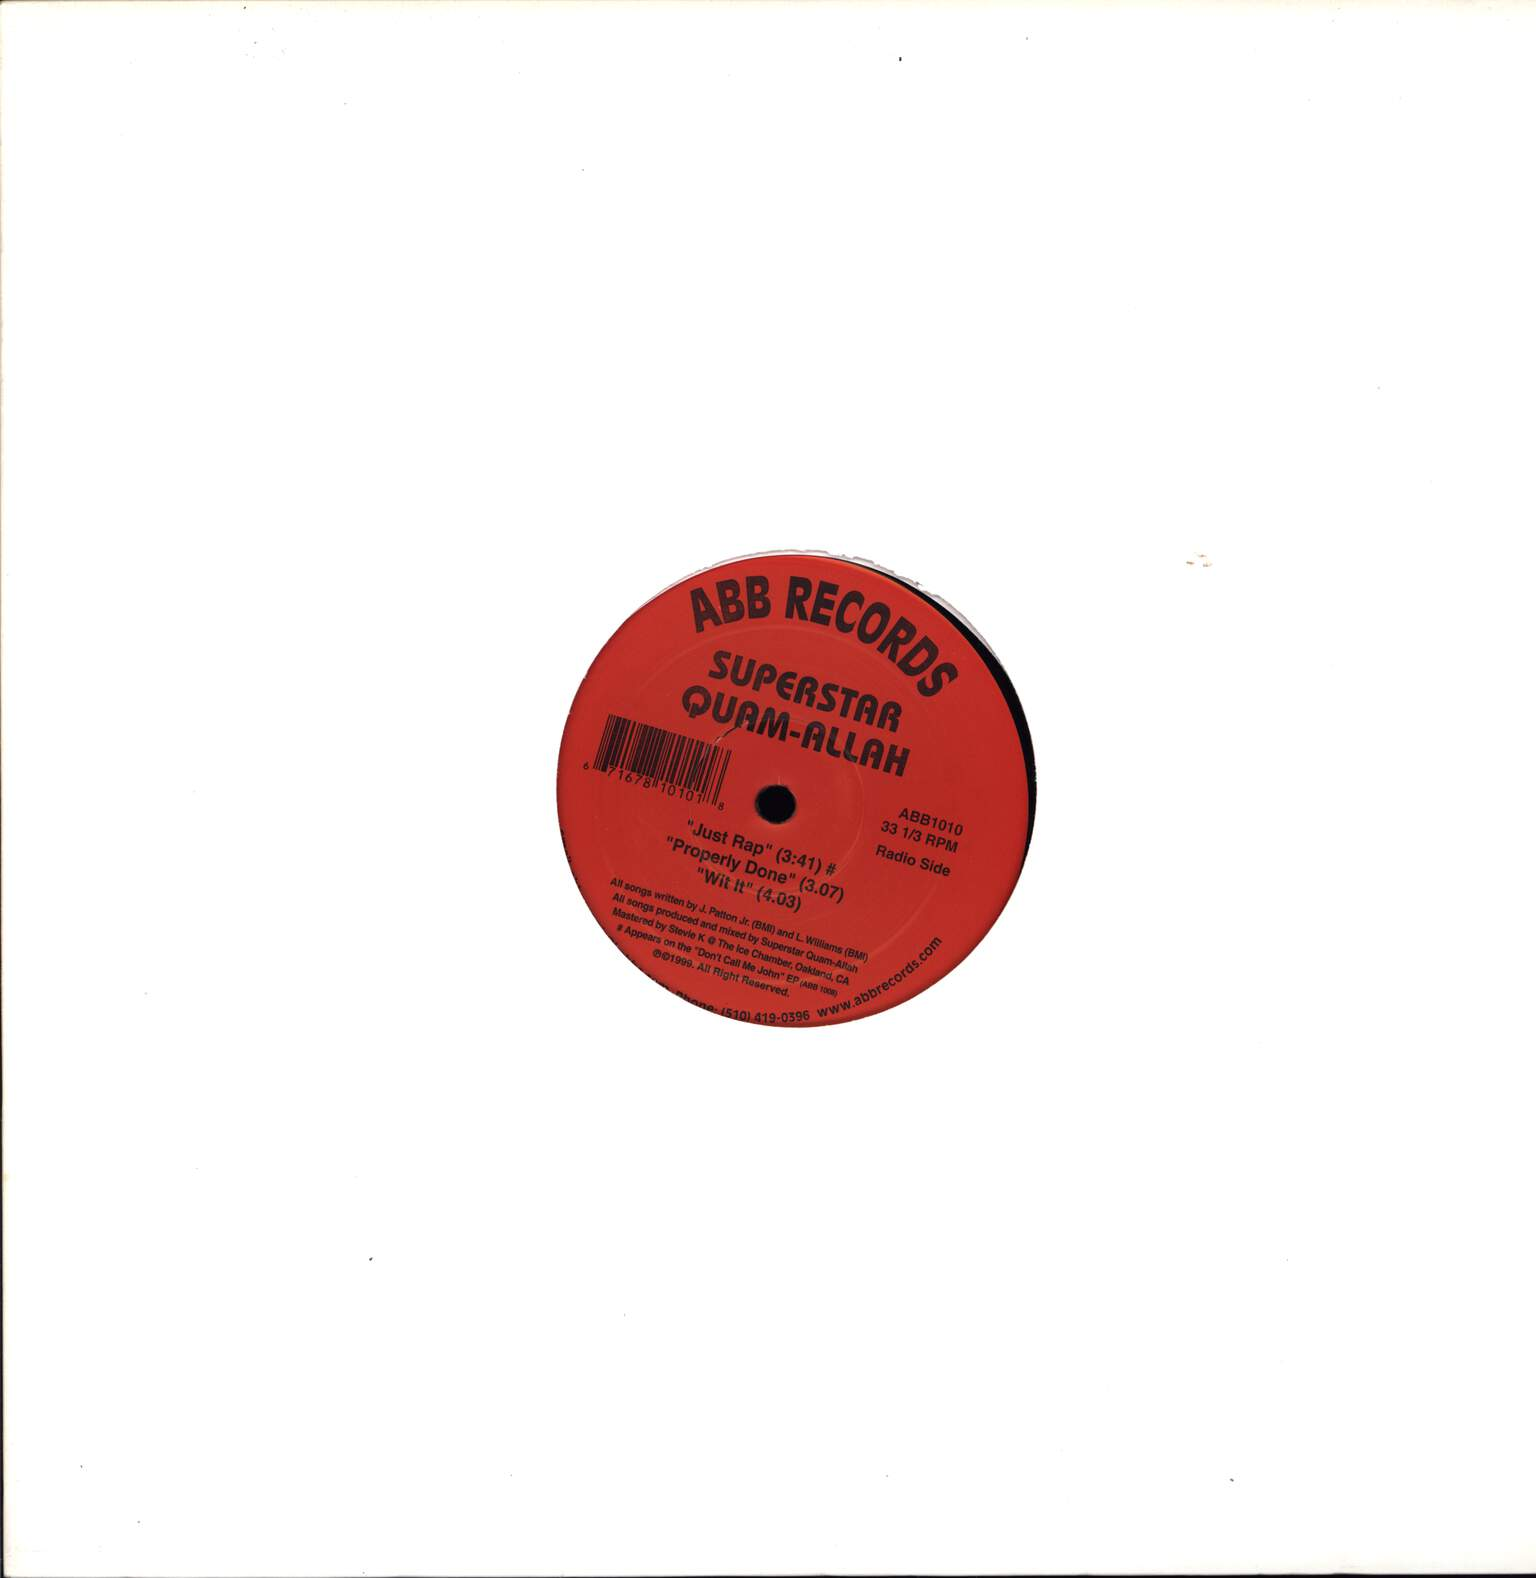 "Superstar Quamallah: Just Rap / Properly Done / Wit It, 12"" Maxi Single (Vinyl)"